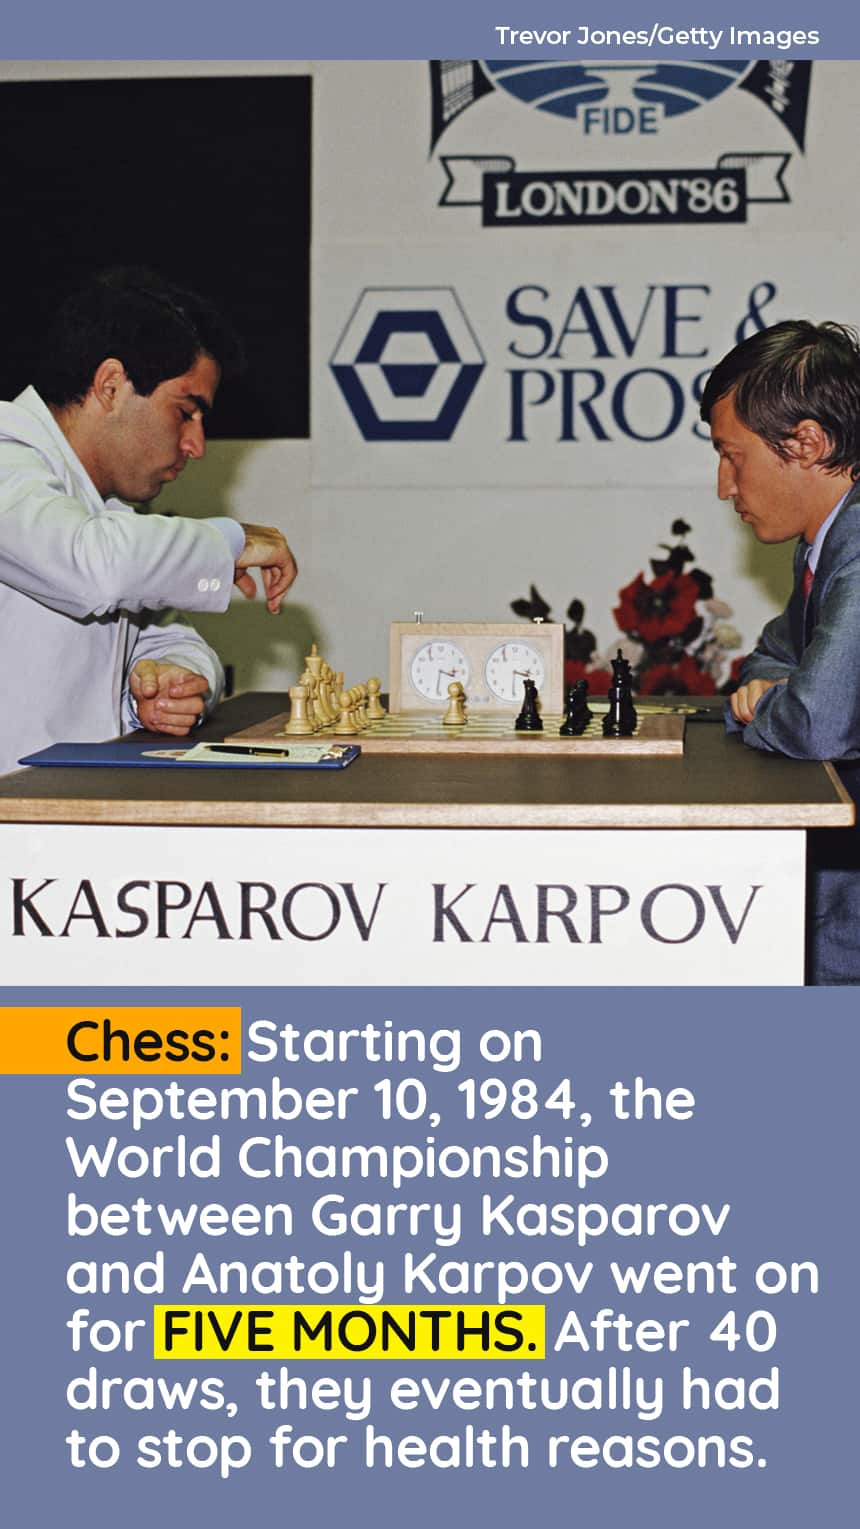 Chess: Starting on September 10, 1984, the  World Championship between Garry Kasparov and Anatoly Karpov went on for FIVE MONTHS. After 40 draws, they eventually had to stop for health reasons.